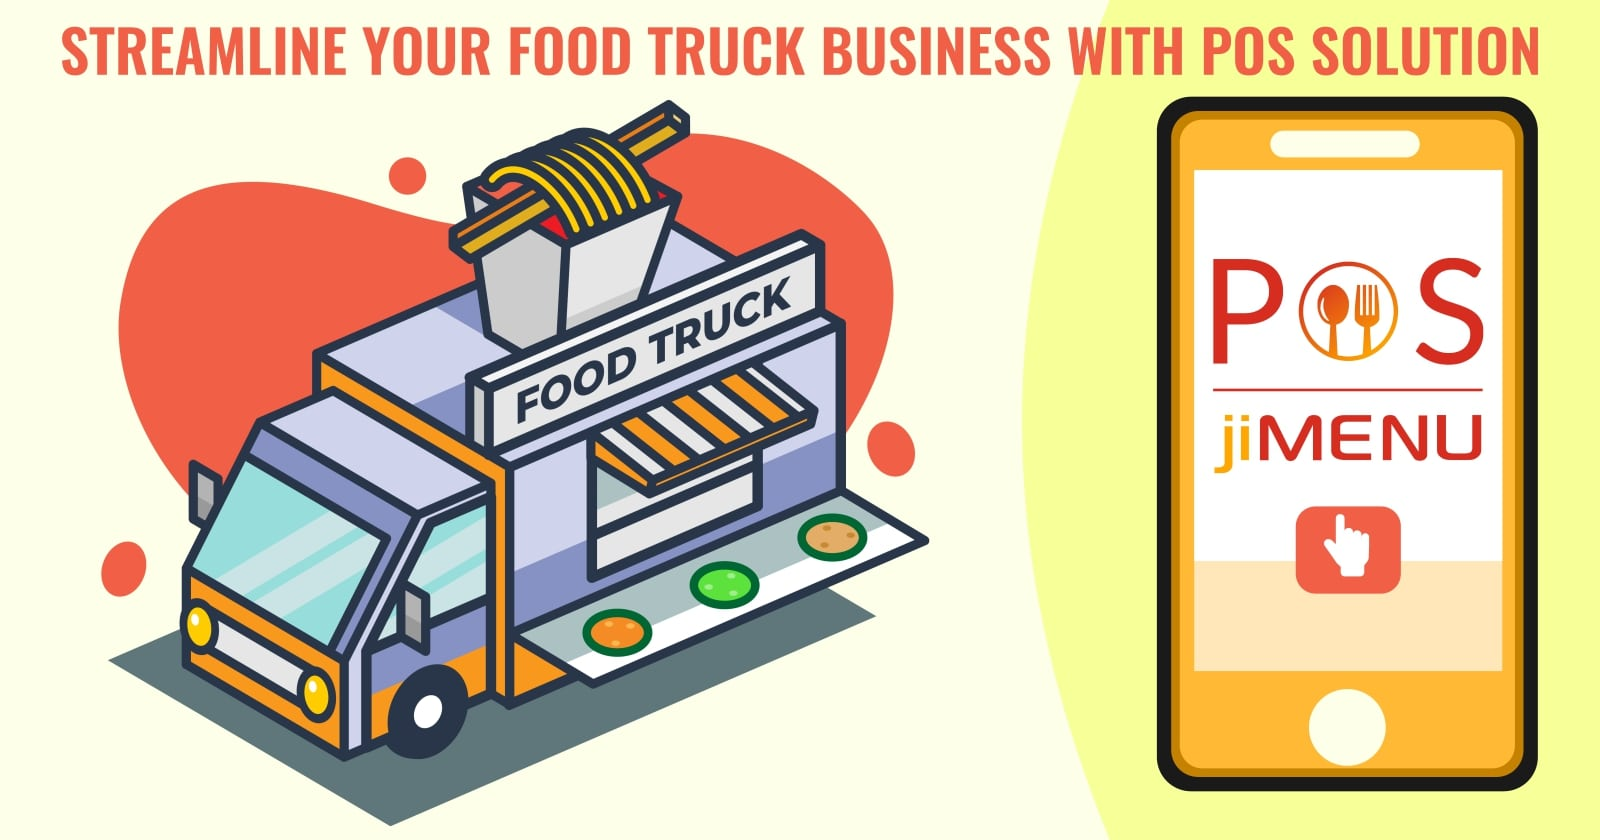 Streamline Your Food Truck Business With POS Solution